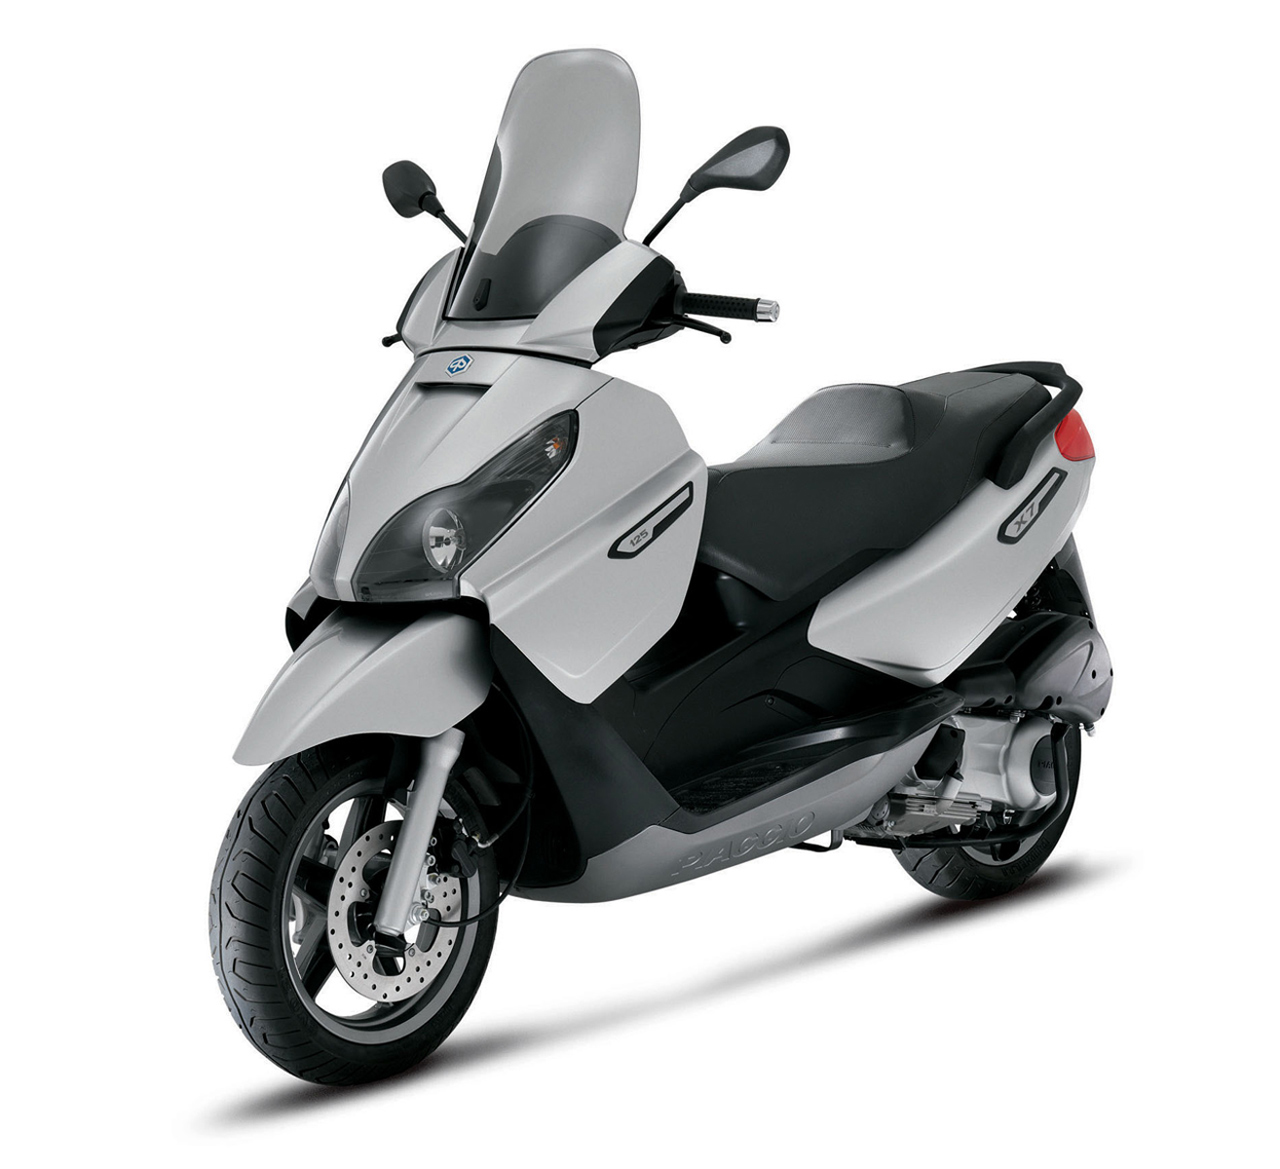 Automatic Transmission Motorcycle >> 2008 Piaggio X7 | Top Speed